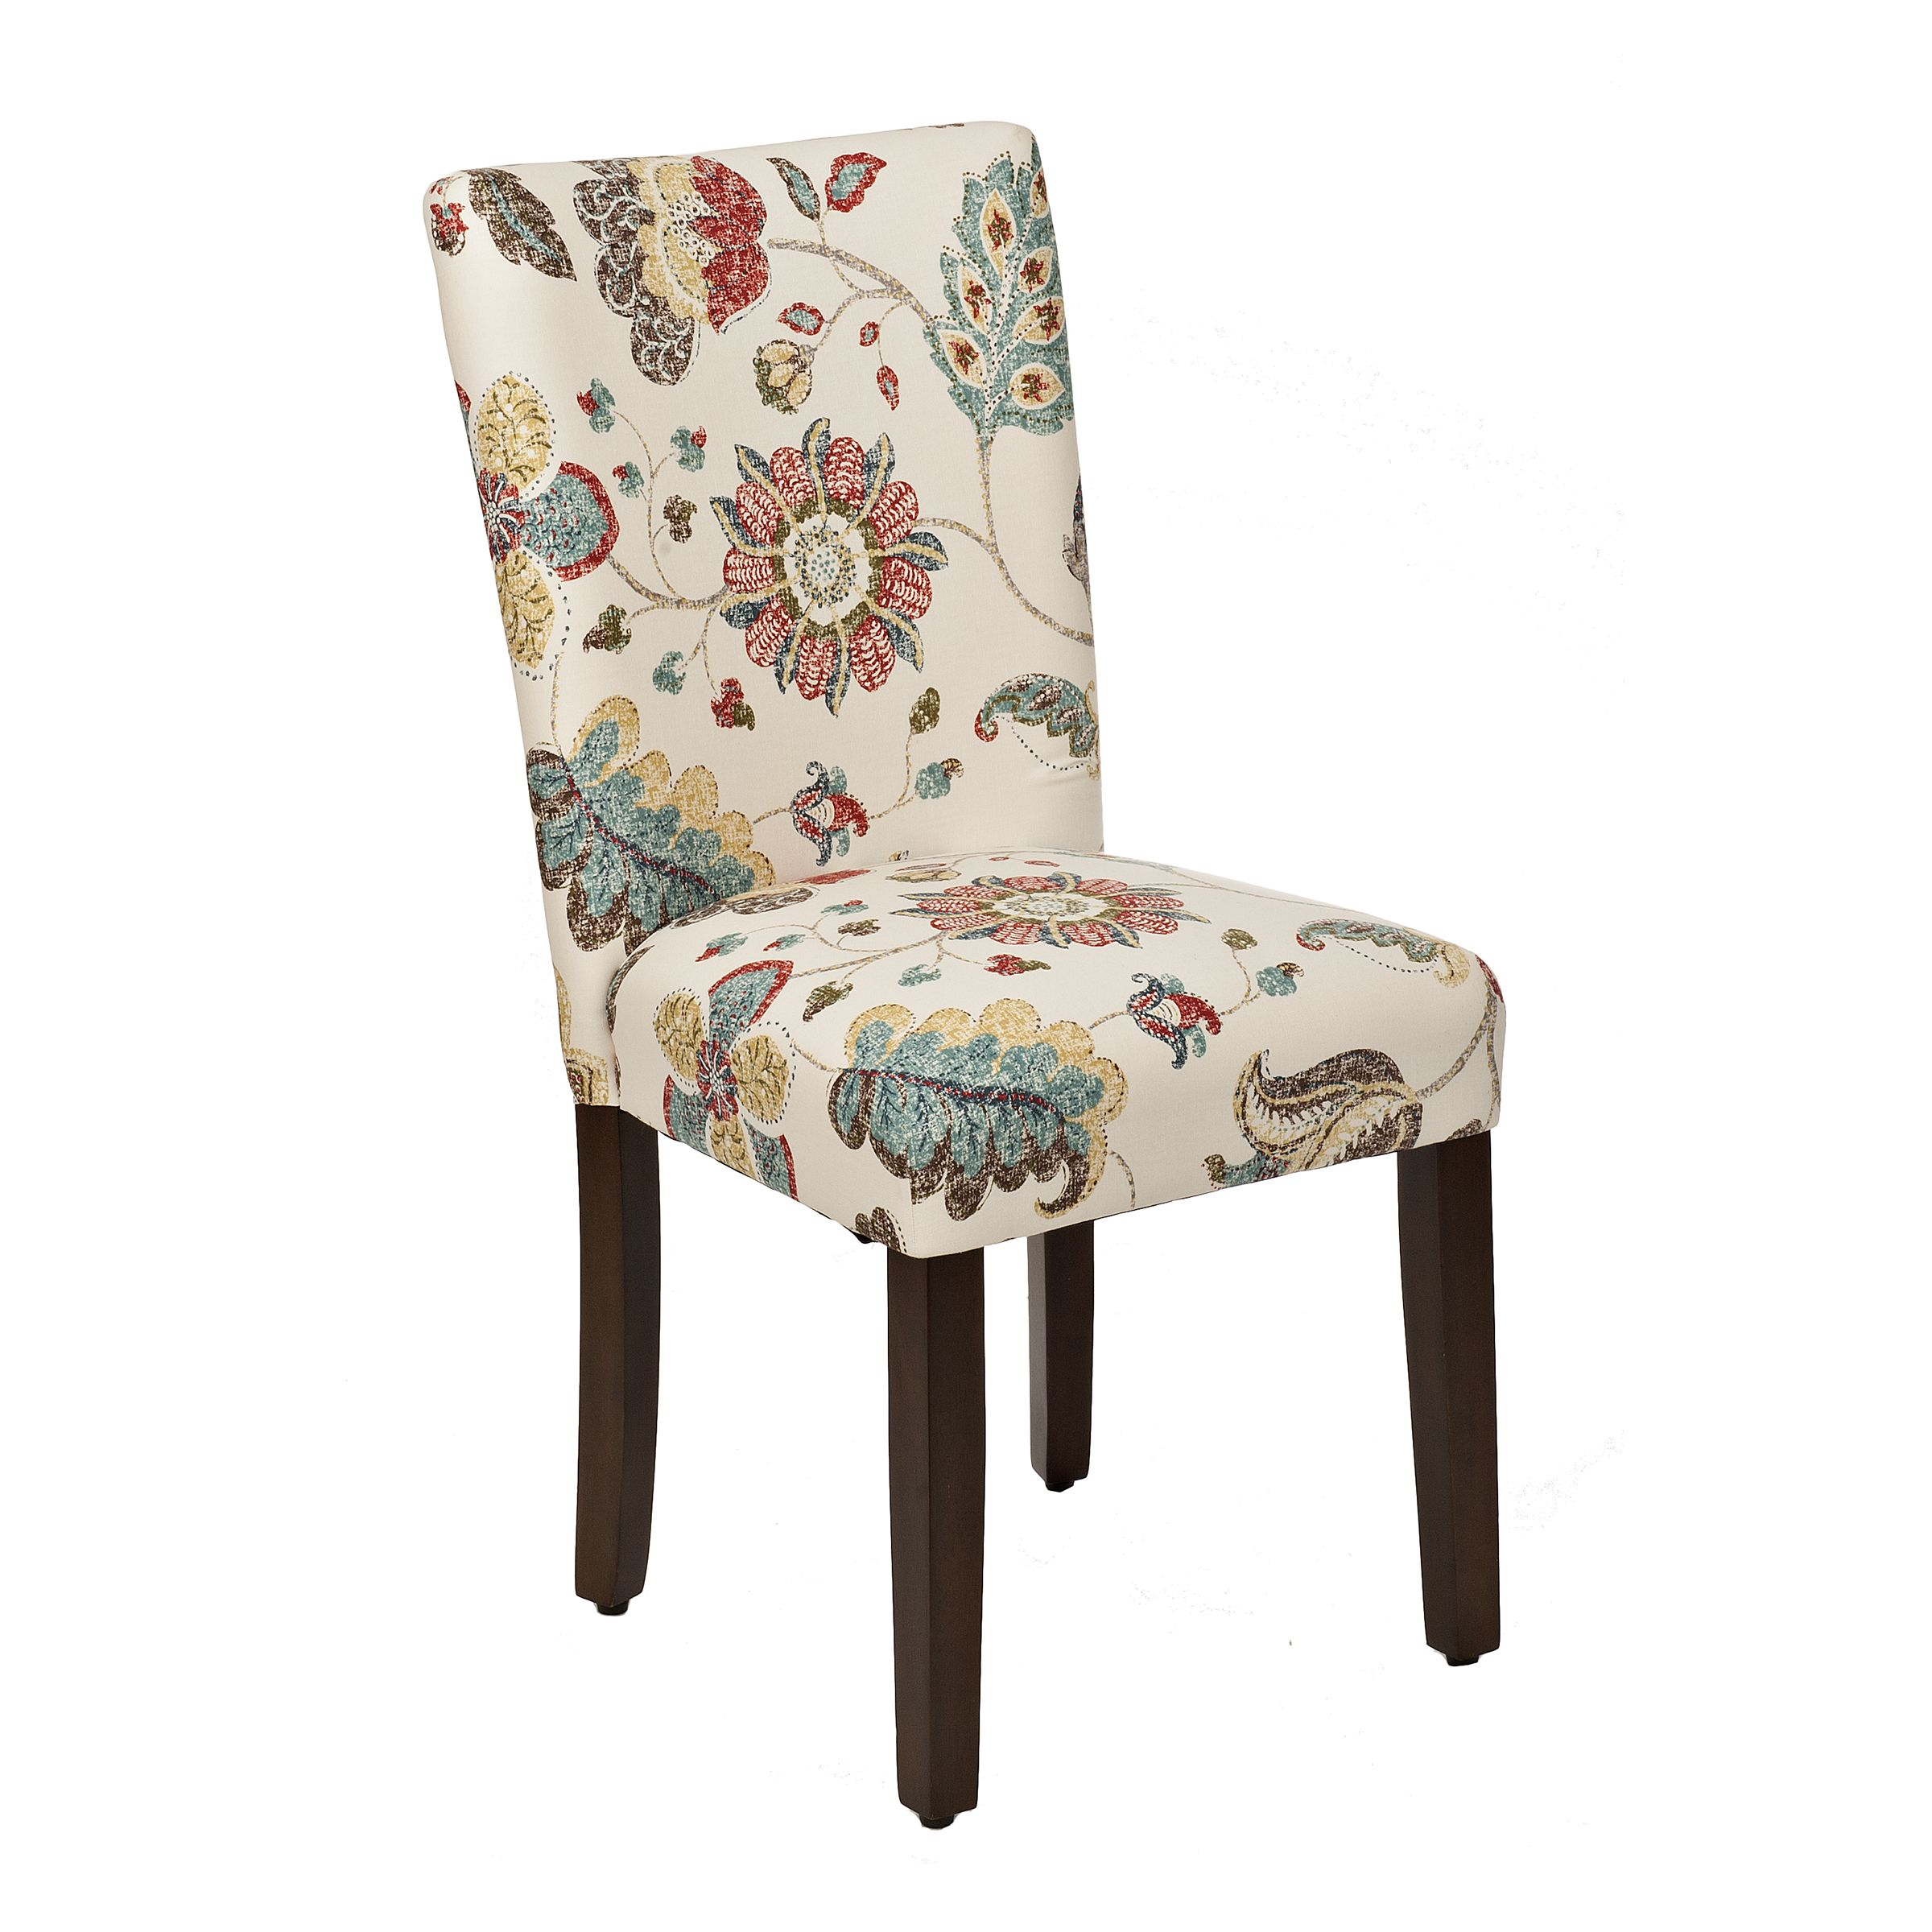 Spring Poppy Parsons Chair | Parsons chairs, Floral chair and House ...